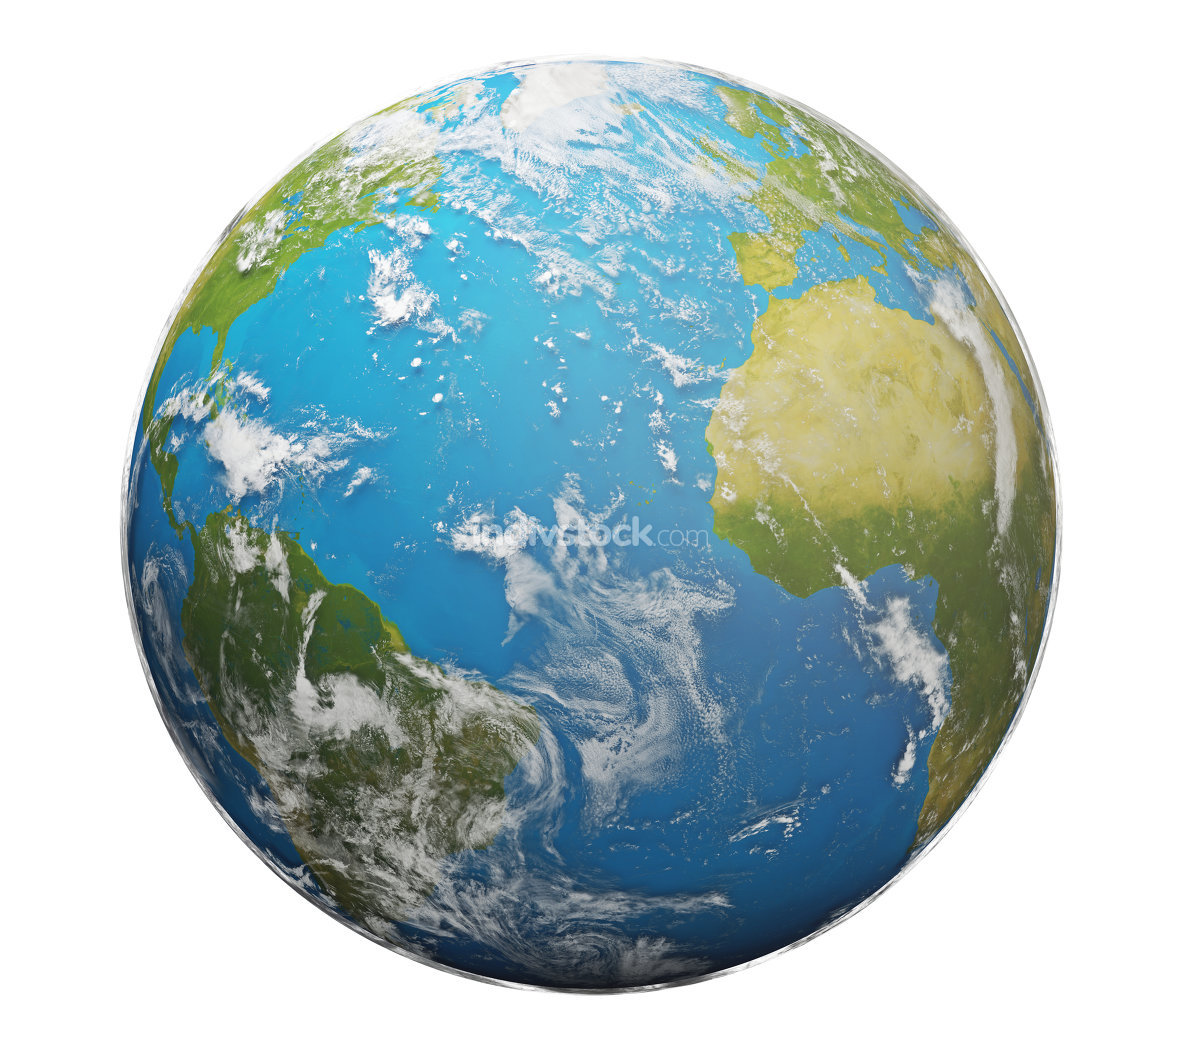 free download: world globe 3d-illustration. elements of this image furnished by